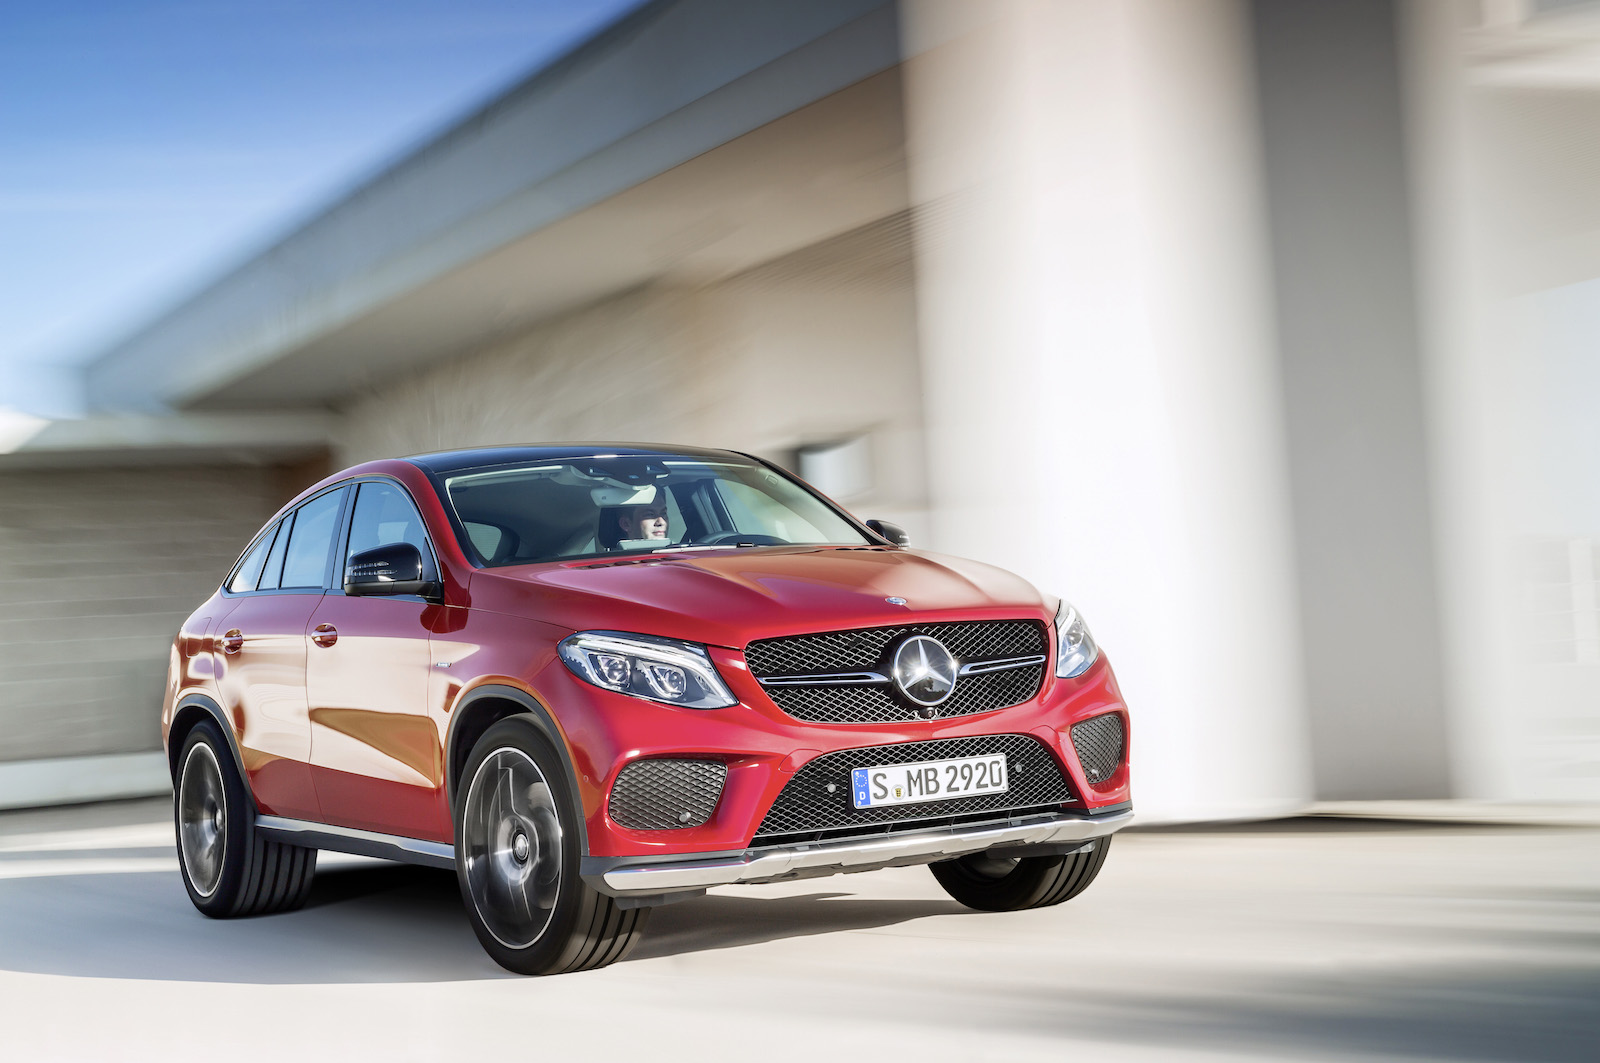 Sonax Amg Mercedes Clrp Lmp1: 2016 Mercedes-Benz GLE450 AMG 4Matic Coupe Preview